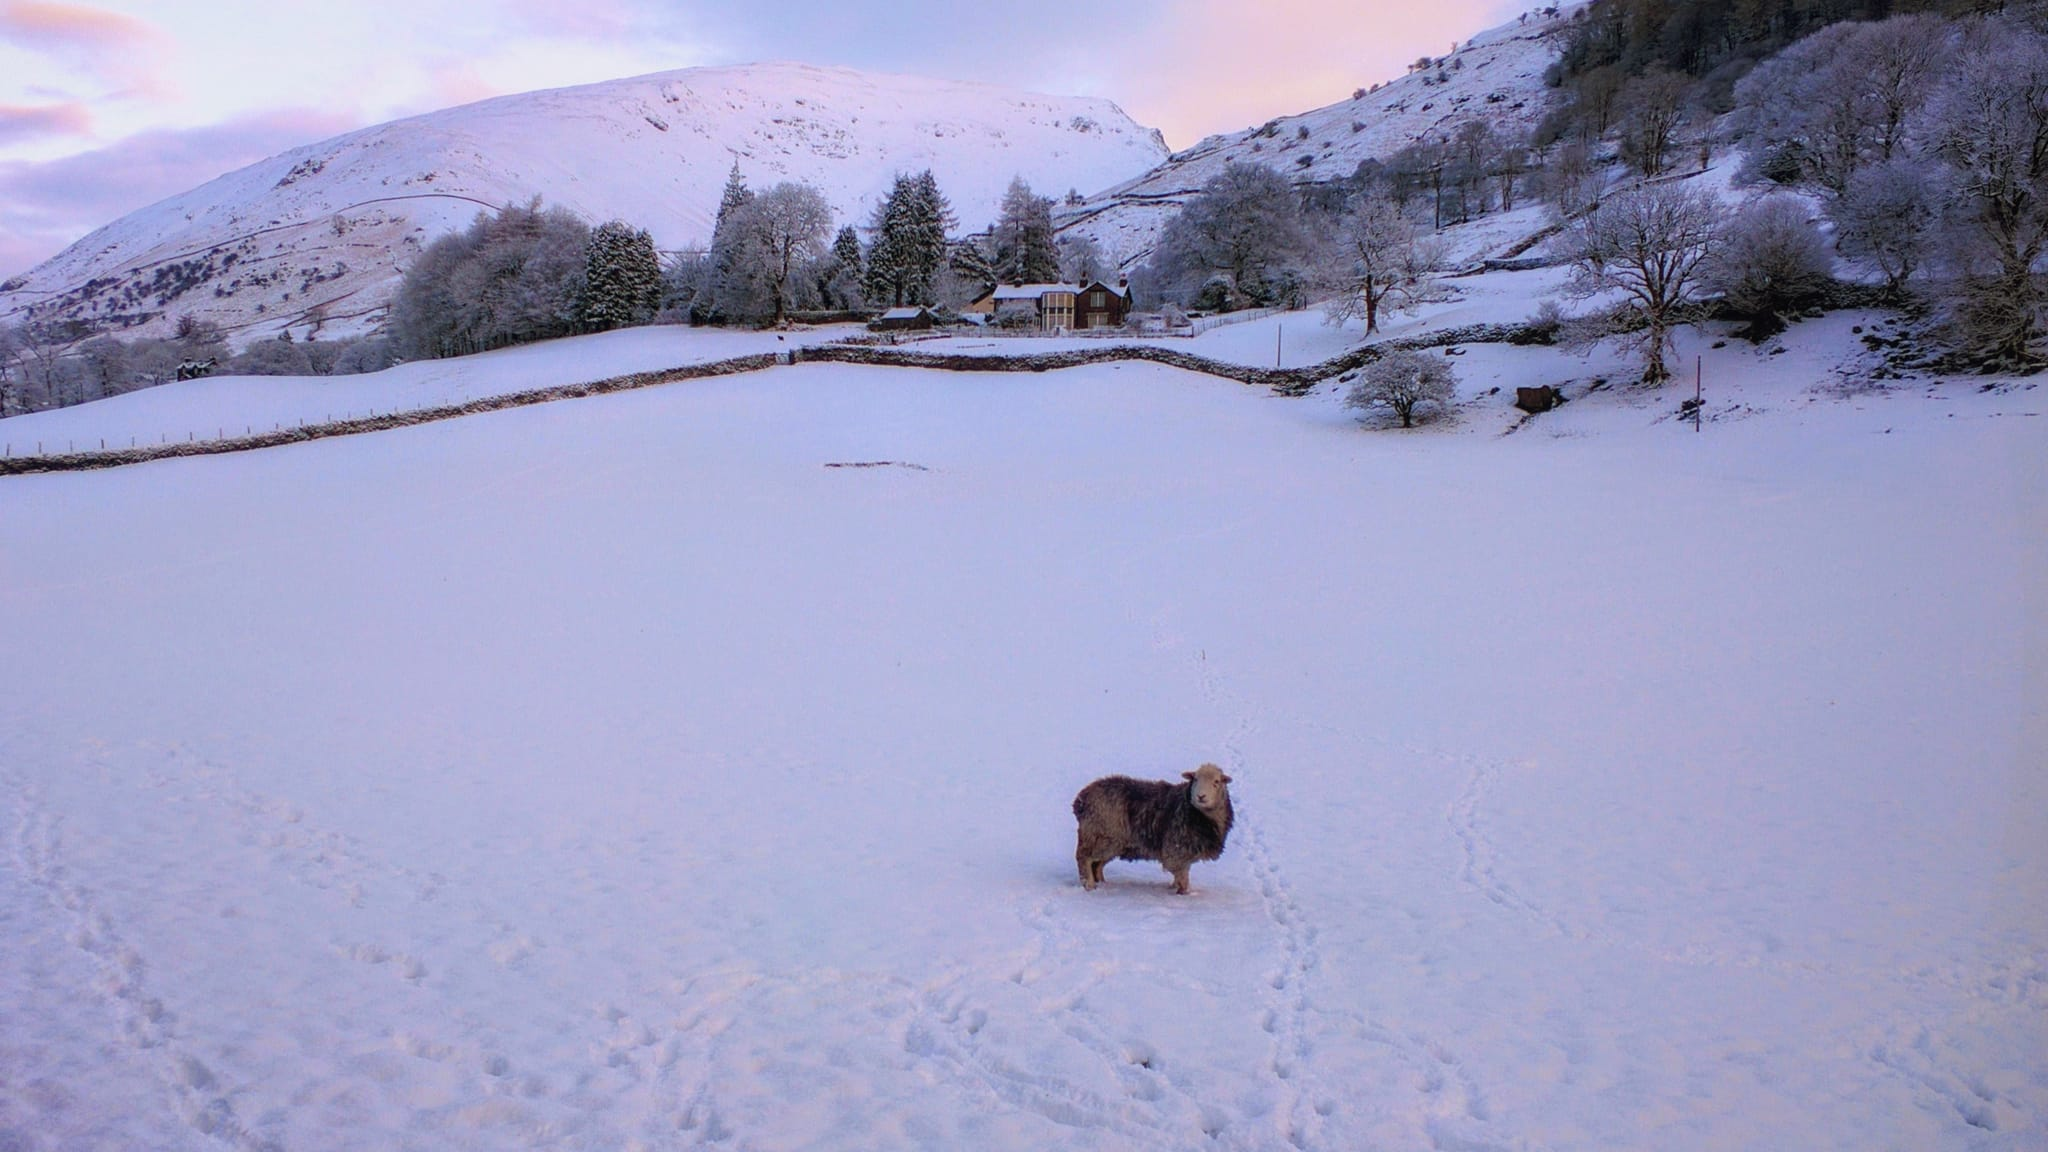 A lone Herdwick sheep ewe stands in a completely snow covered early one morning, with the Grasmere fells of Seat Sandal in the distance